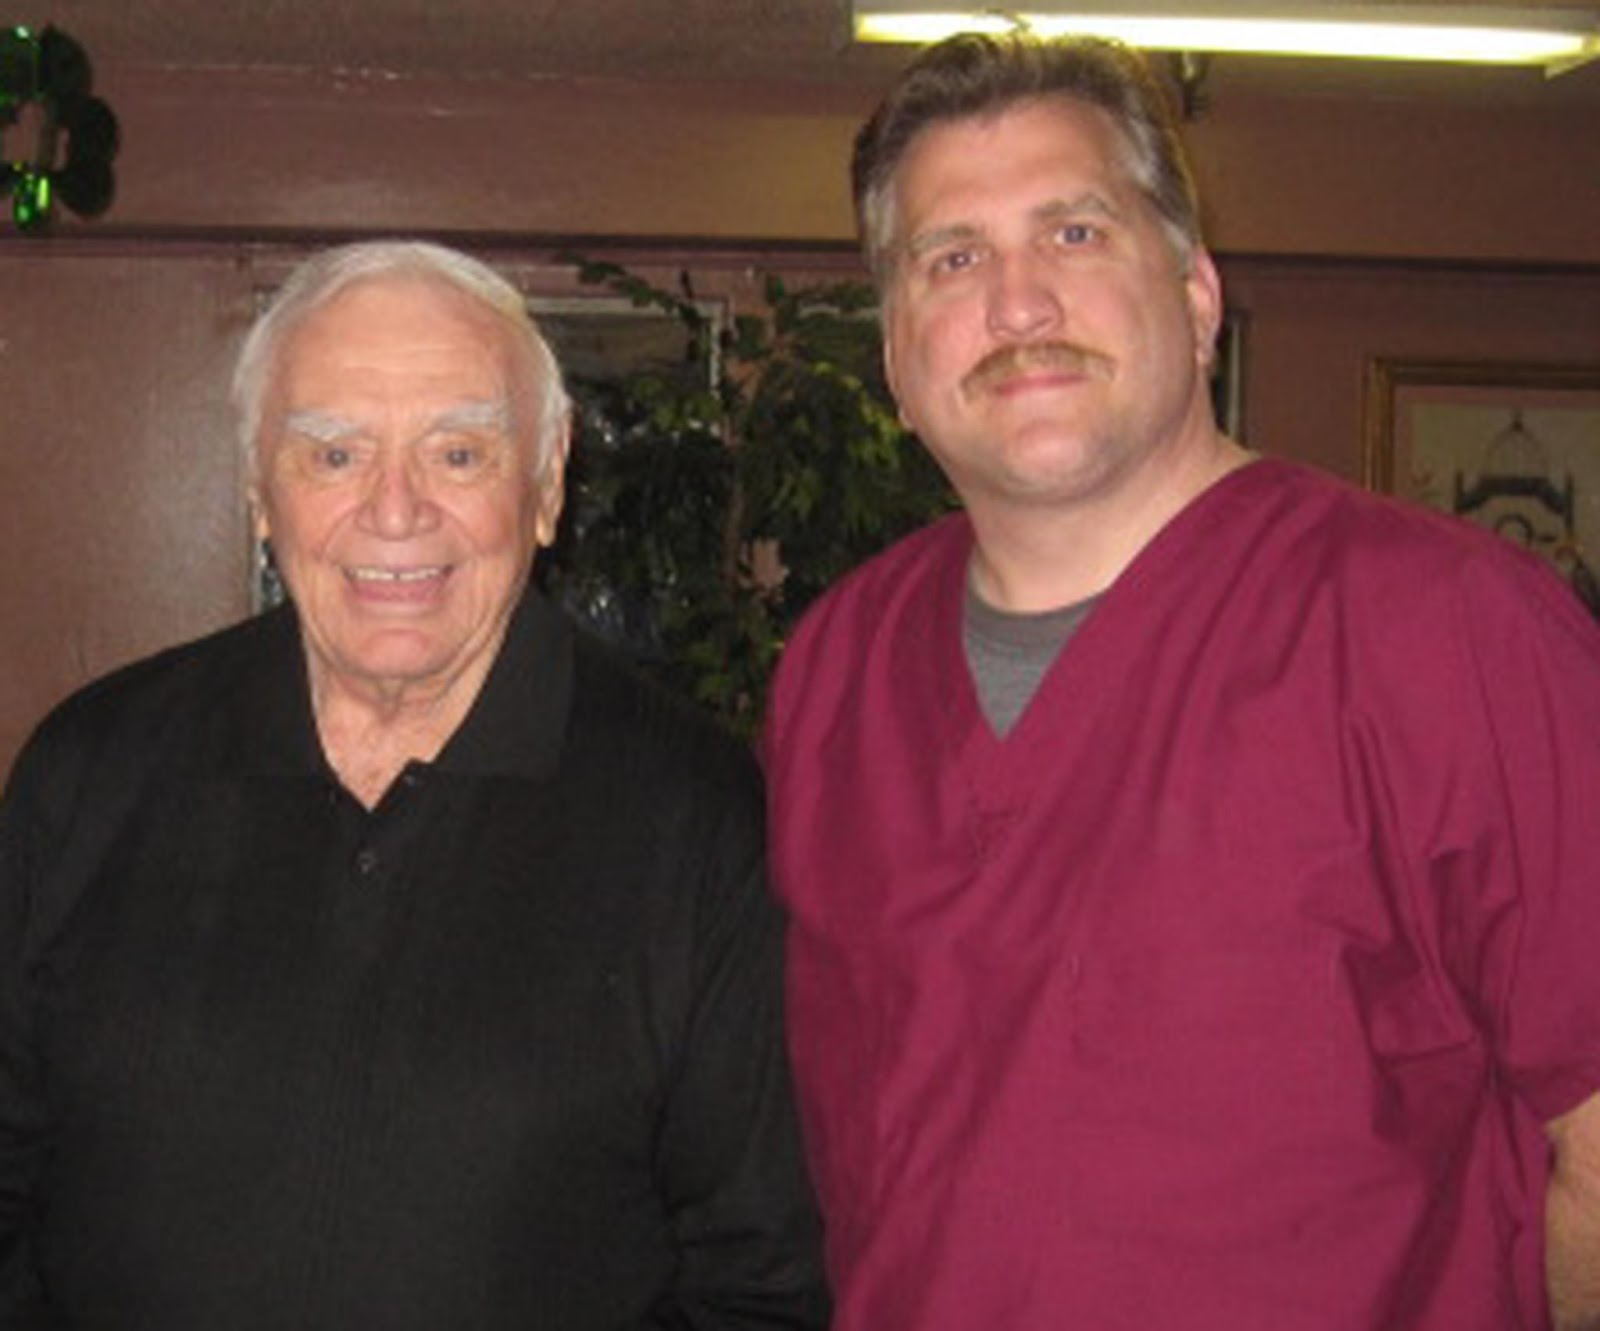 With Ernest Borgnine....one of my all time favorite actors!